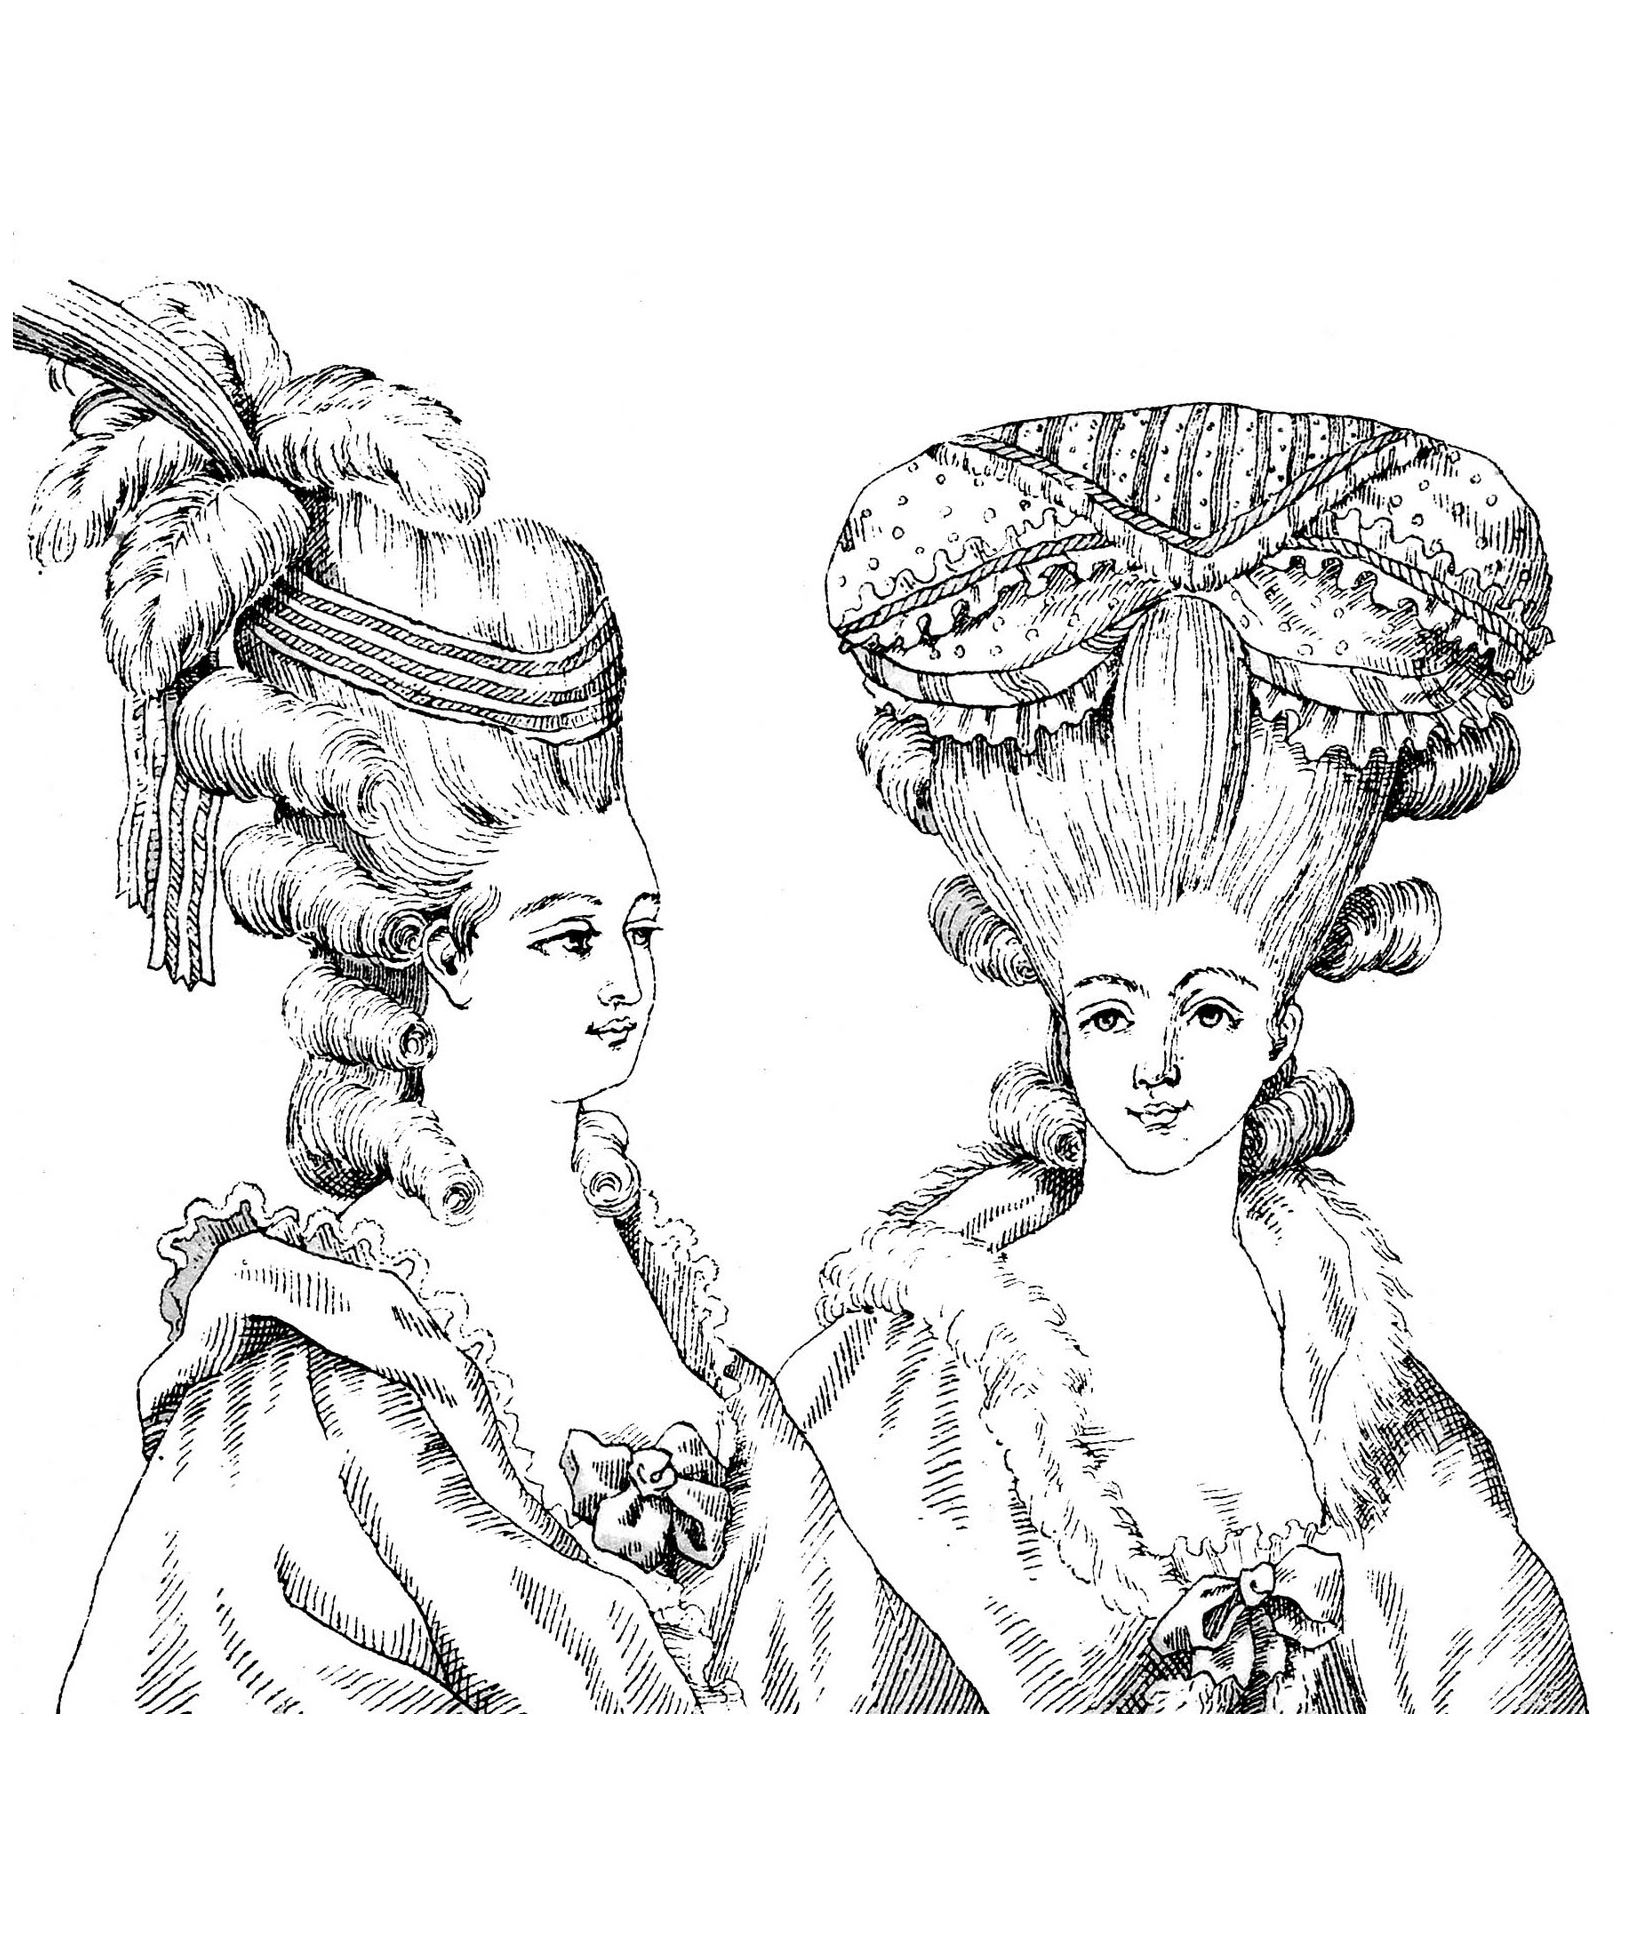 Hairdresser of woman, 'Marie-Antoinette style'